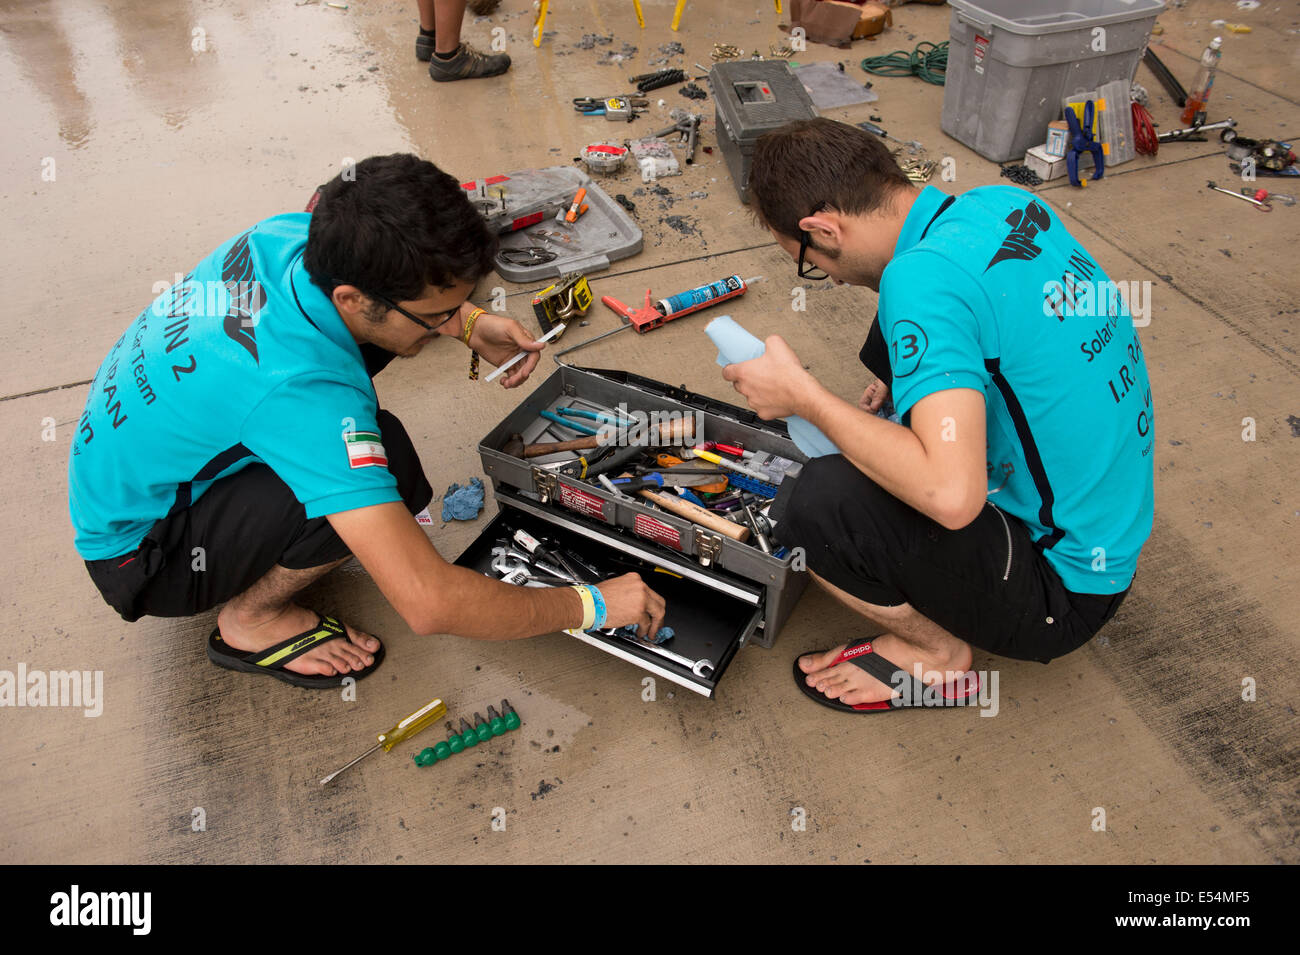 Iranian students help clean tools damaged in an overnight electrical fire in the garage area during qualifying races - Stock Image